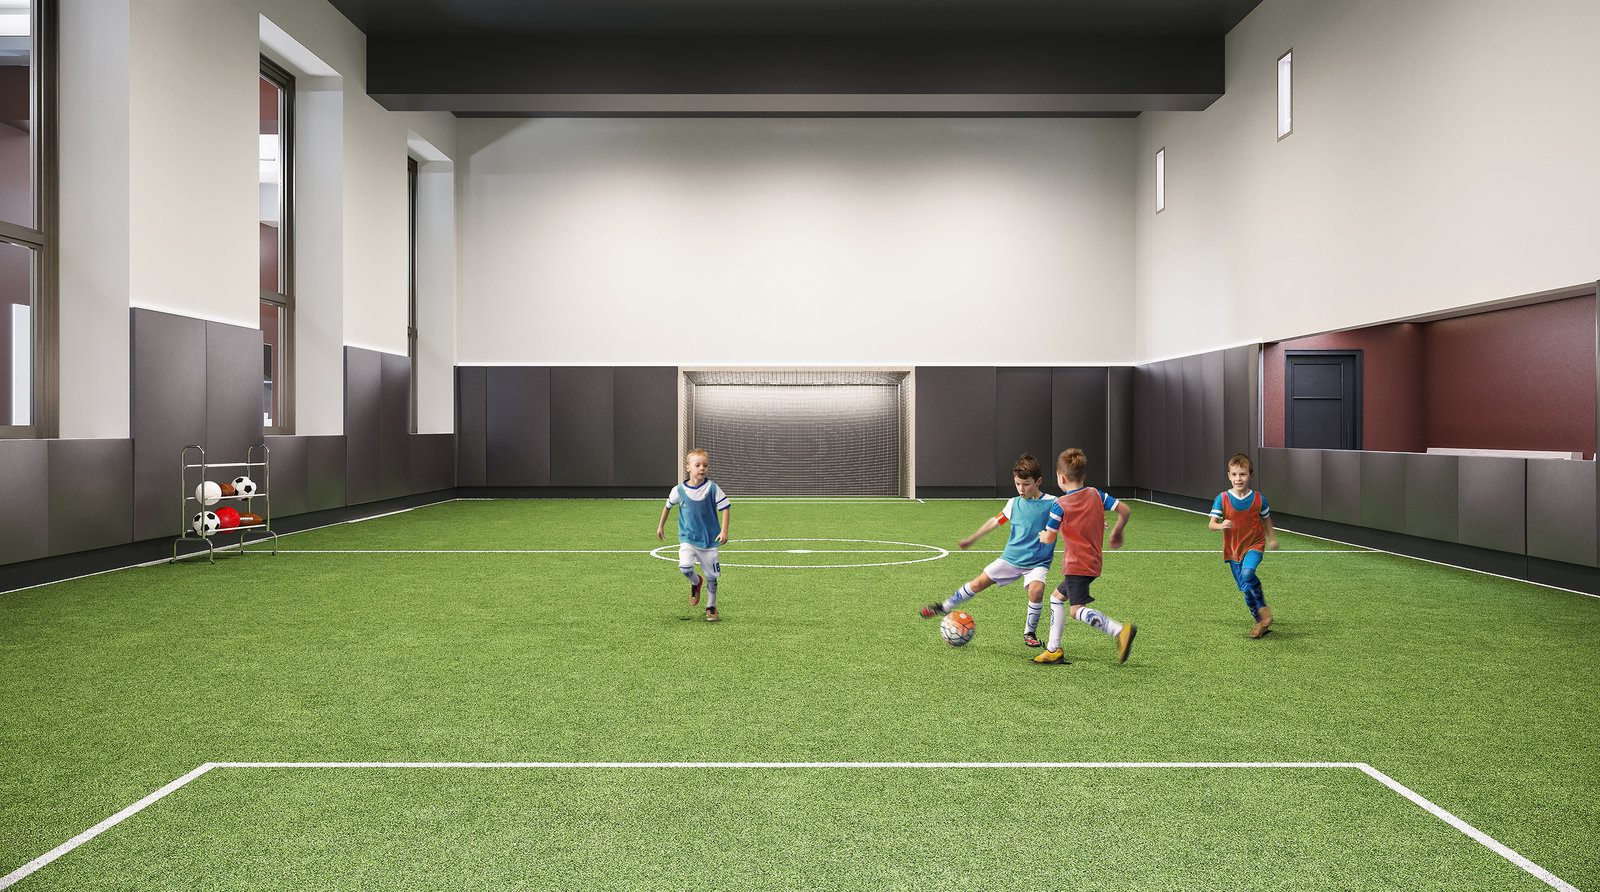 Waterline square the waterline club amenities soccer green revf 1600 0x0x3000x1672 q85